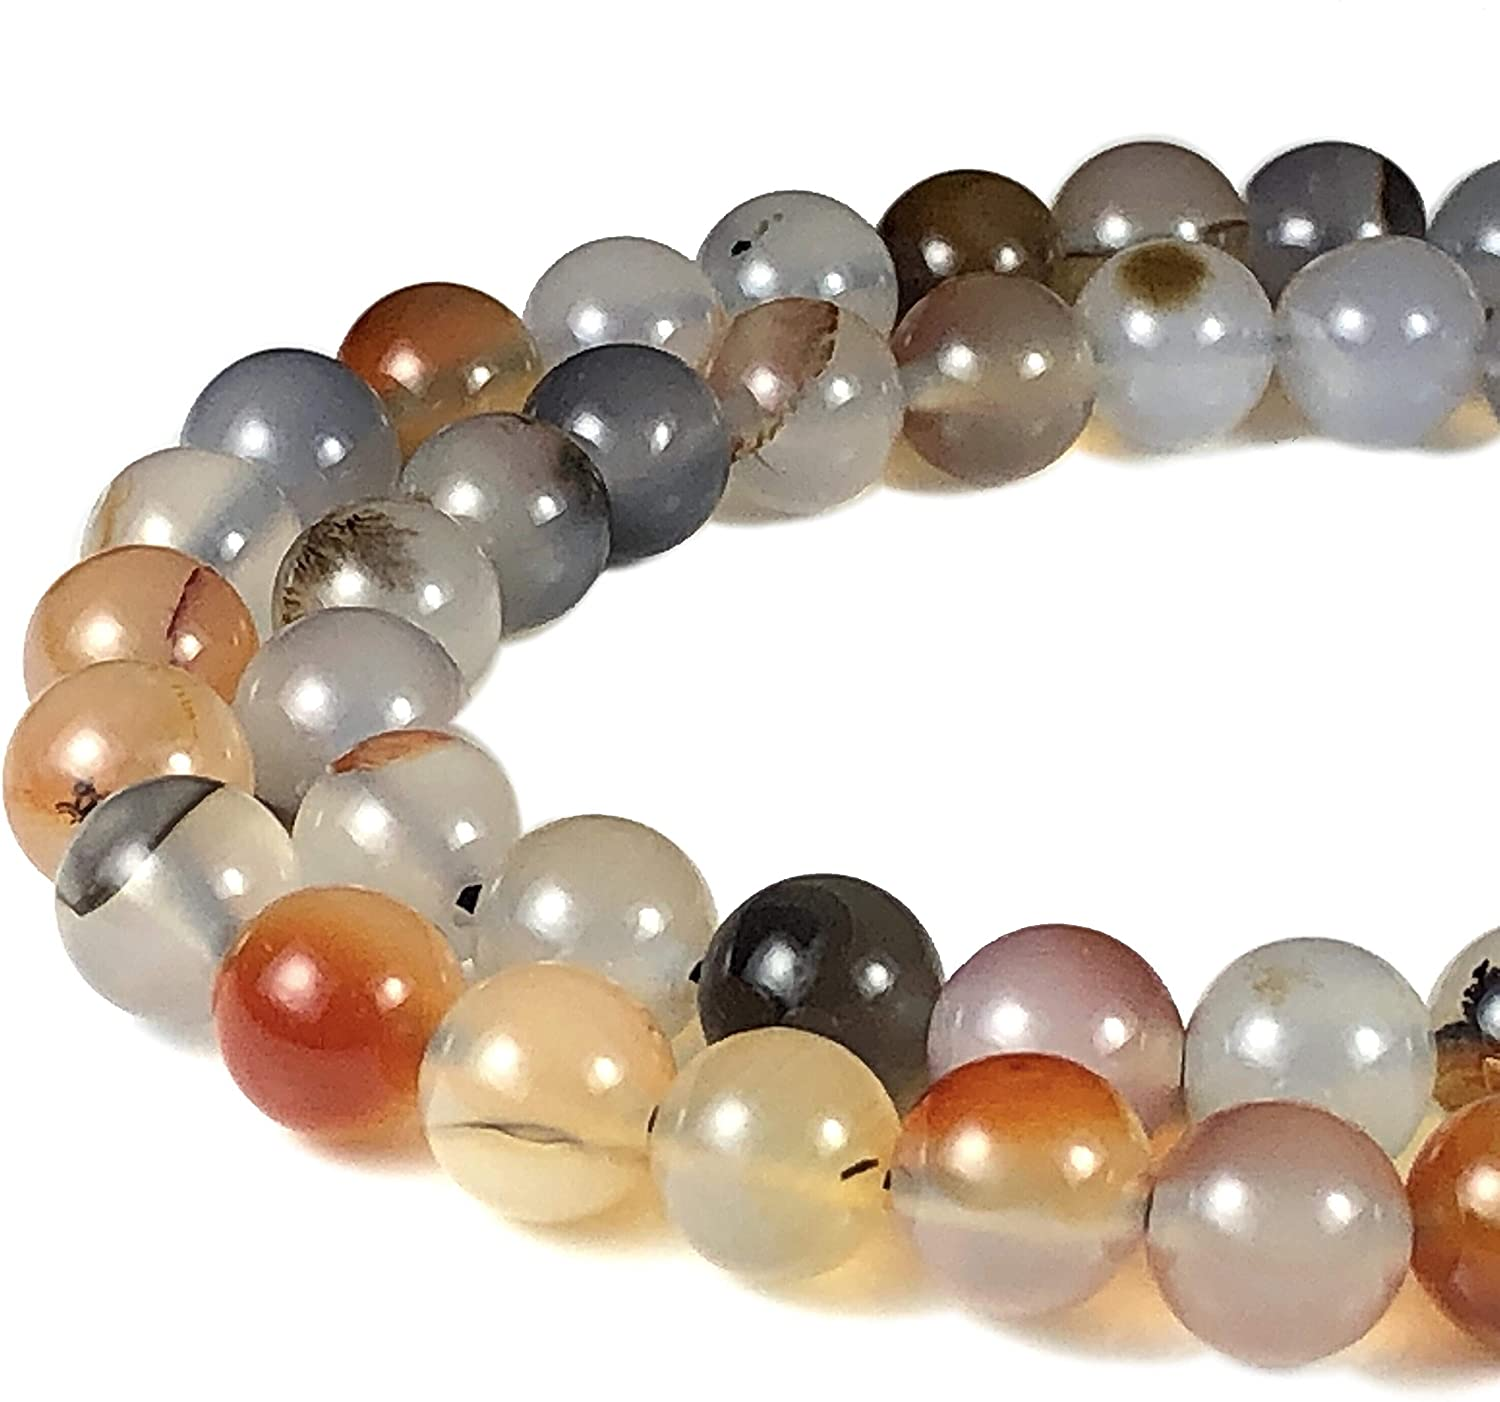 [ABCgems] Dendritic Agate 8mm Smooth Round Beads for Beading & Jewelry Making